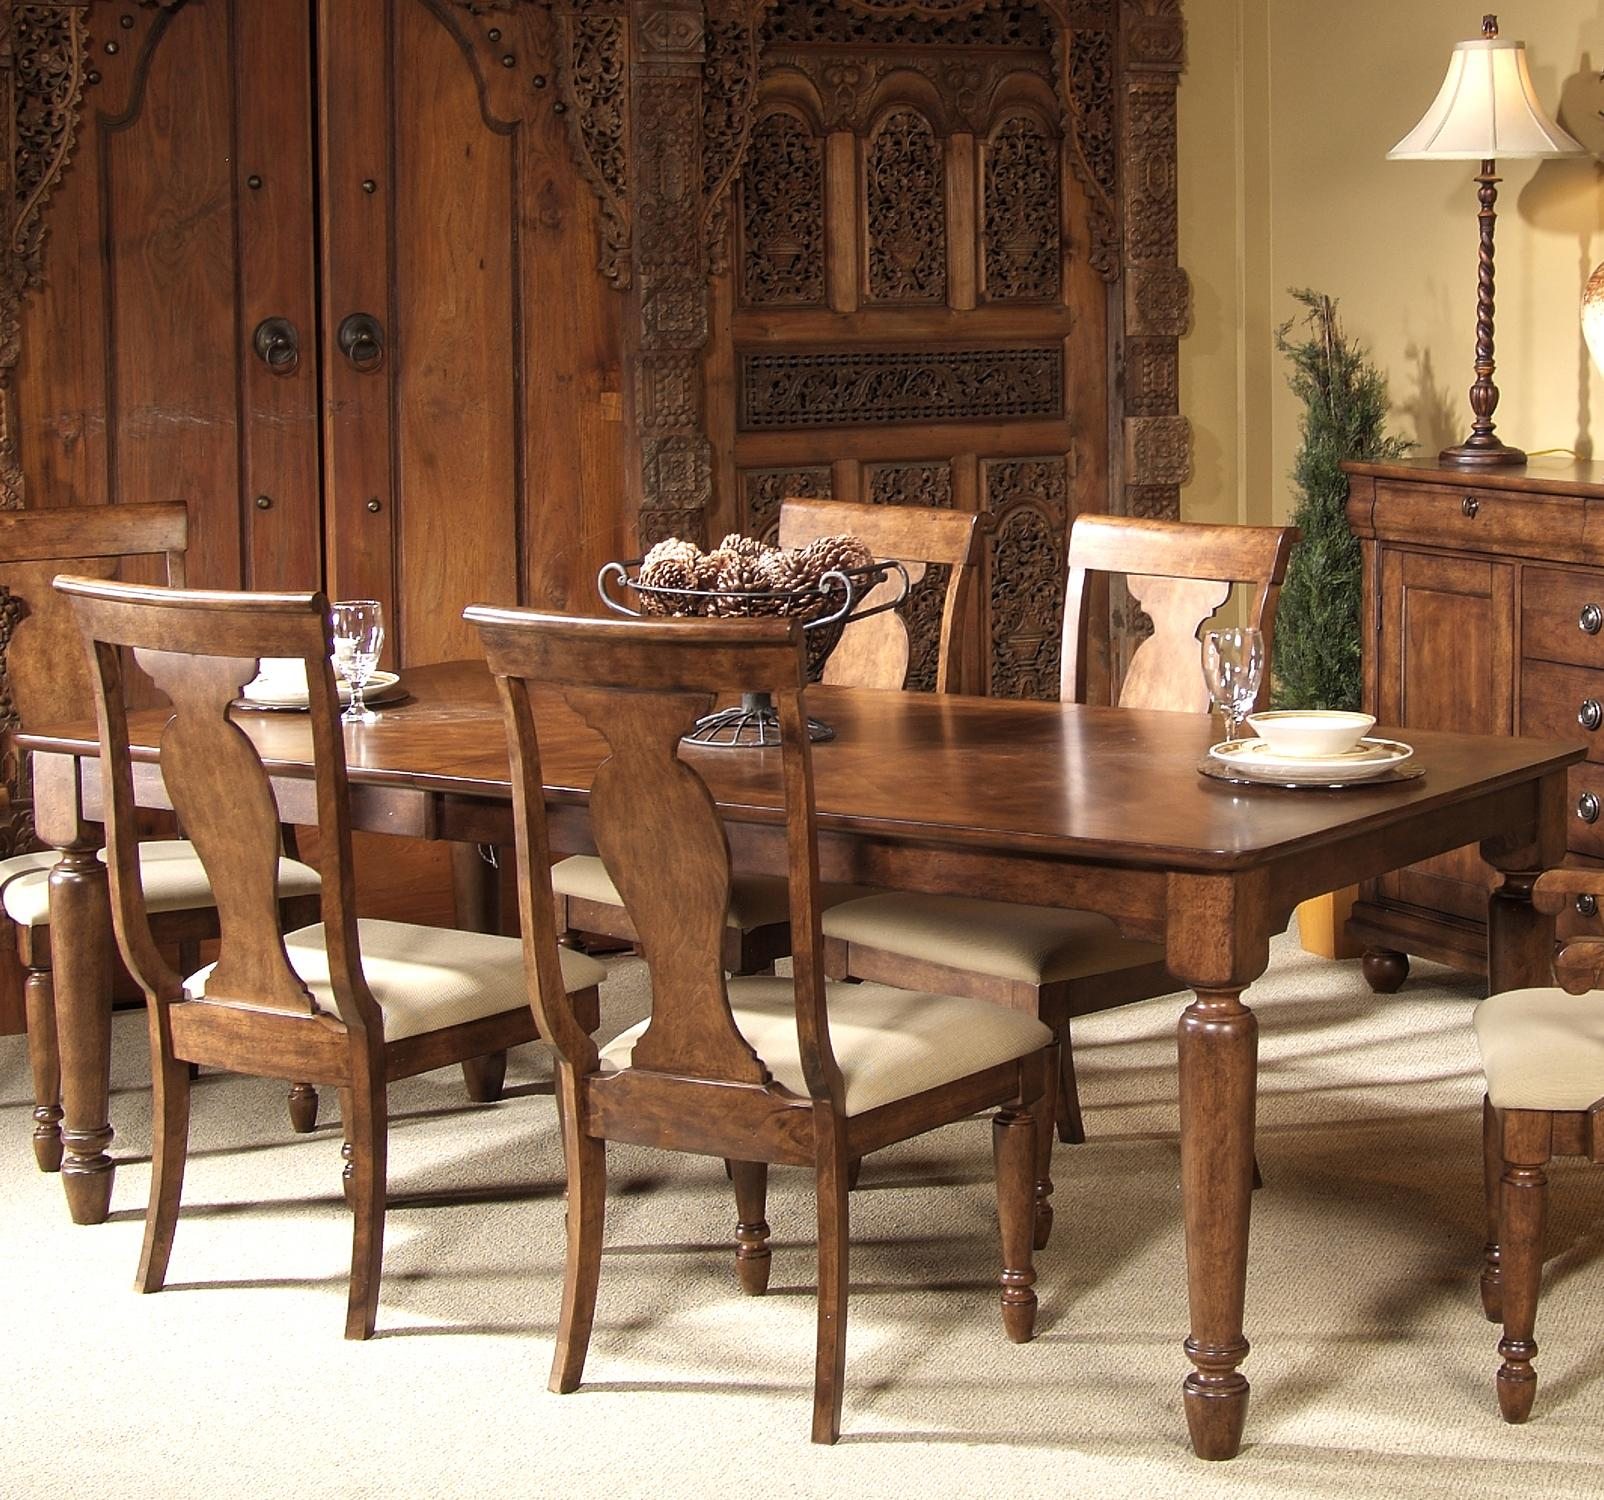 Rustic Traditions Rectangular Leg Table by Liberty Furniture at Lapeer Furniture & Mattress Center